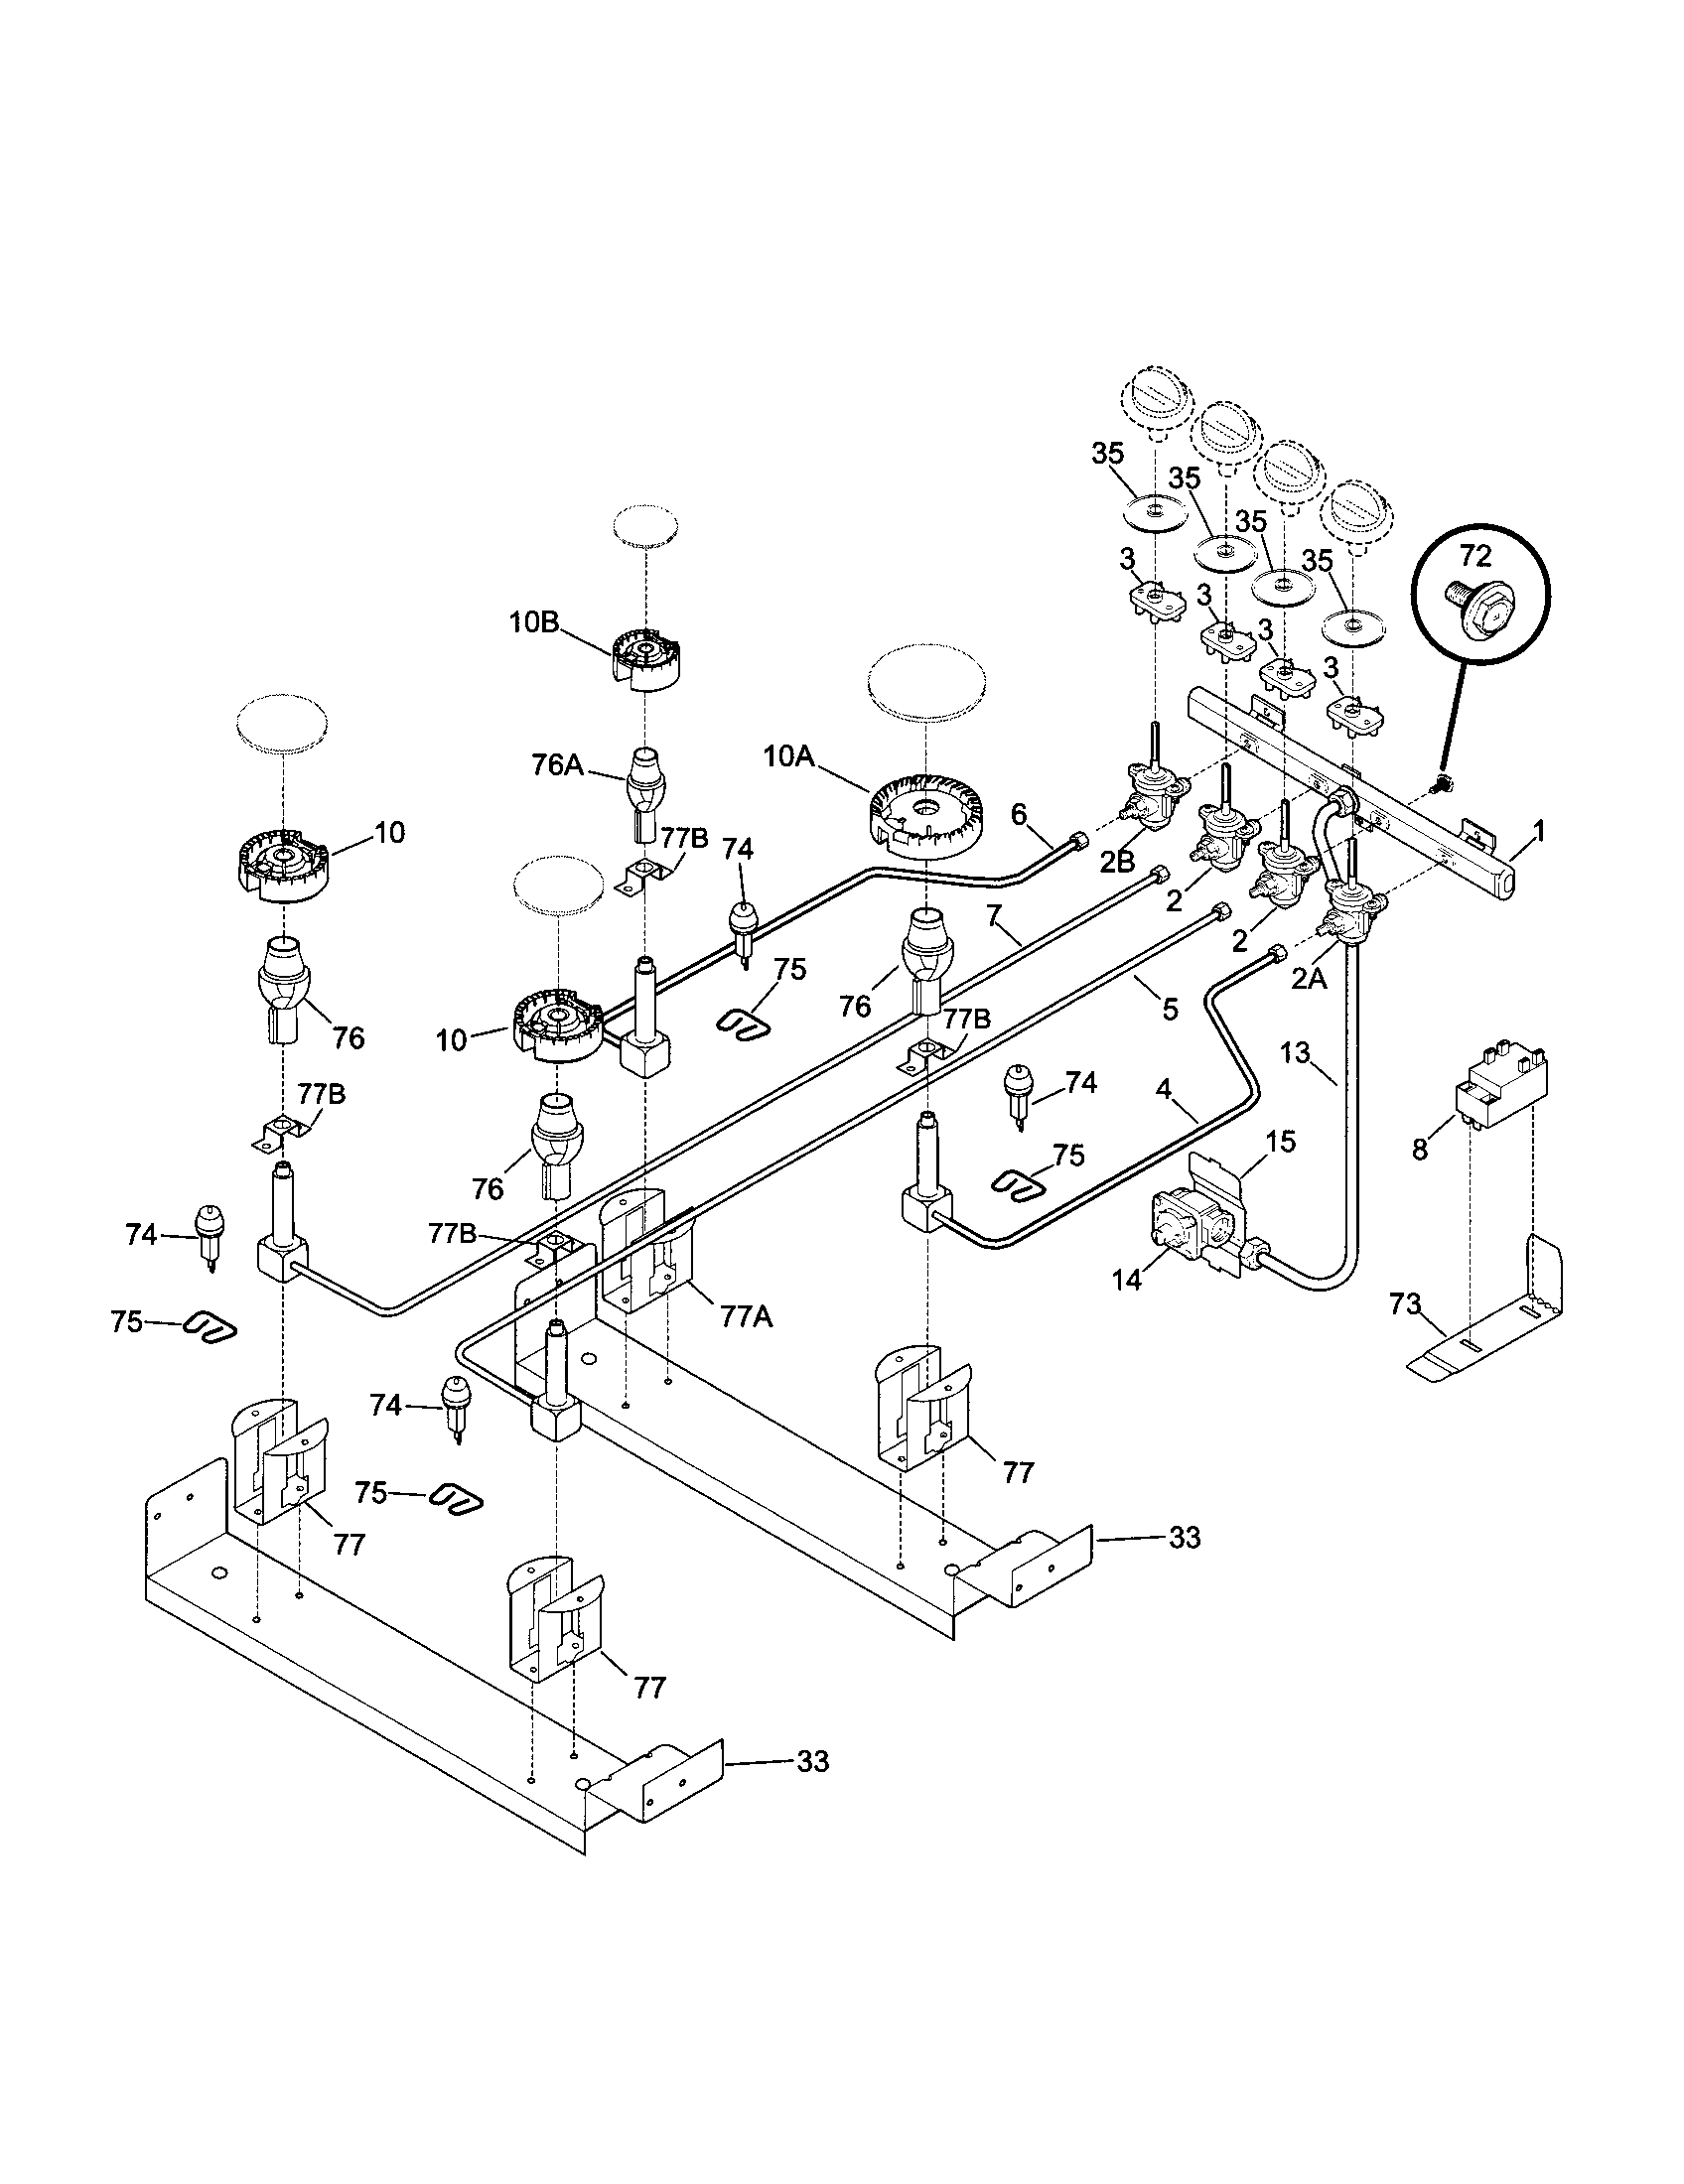 kenmore dishwasher control panel schematic